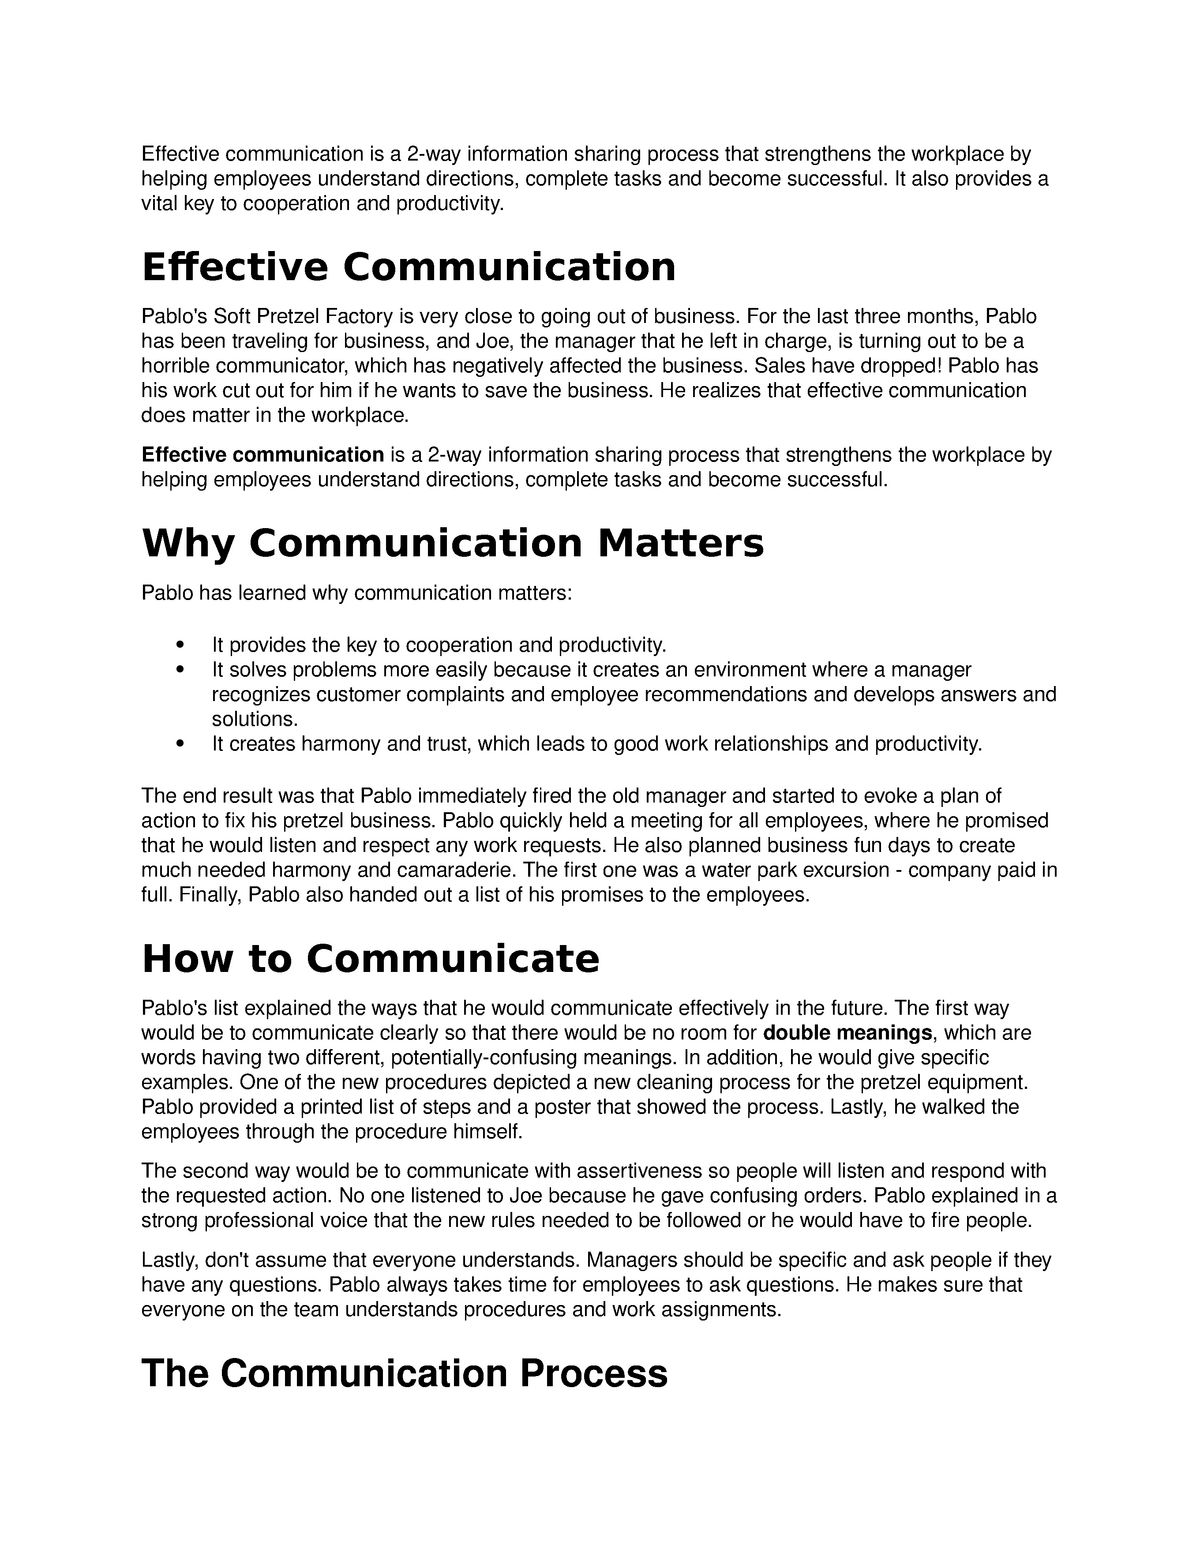 Communication - Lecture notes 1 - Business communication